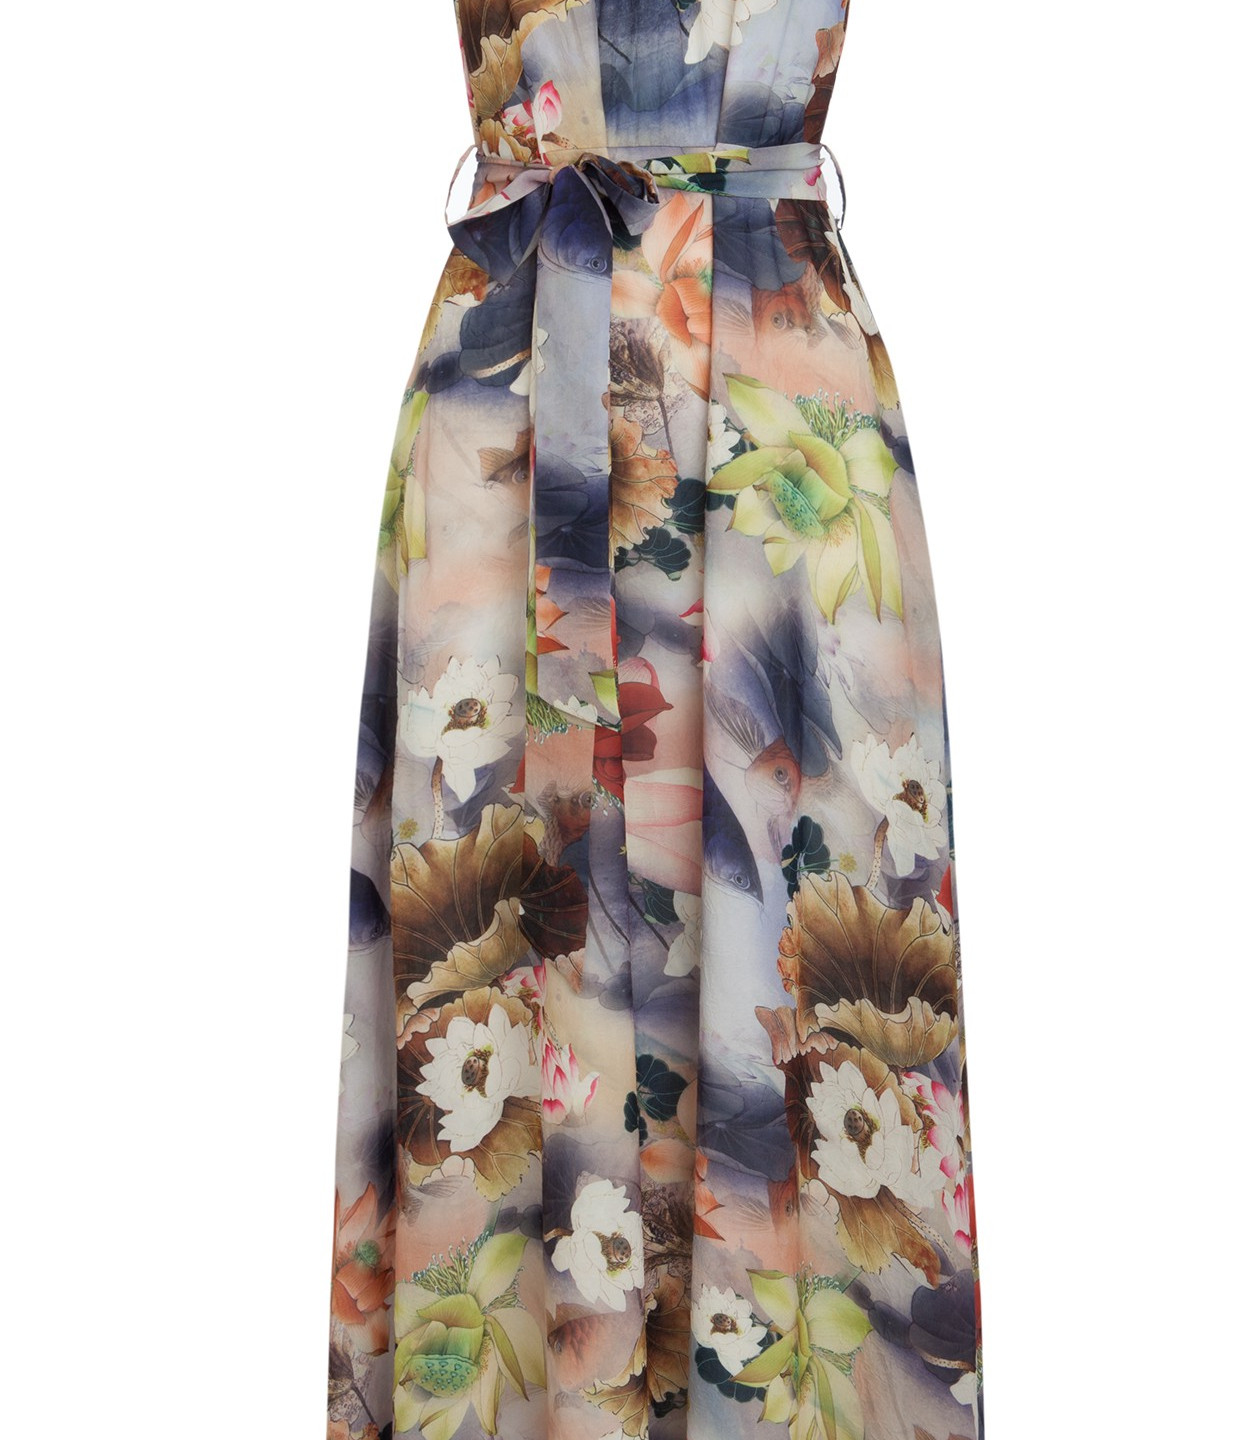 Metamorphosis have a gorgeous range of flattering dresses, just in time for the holiday season.  Our favourite is this beautiful chiffon maxi with a romantic floral motif in warm summer hues for £79. With the optional waist belt and loose, floaty fabric, it's perfect for an elegant evening out. Available at Metamorphosis, Charles House (Corner of Charles St and Bath St)